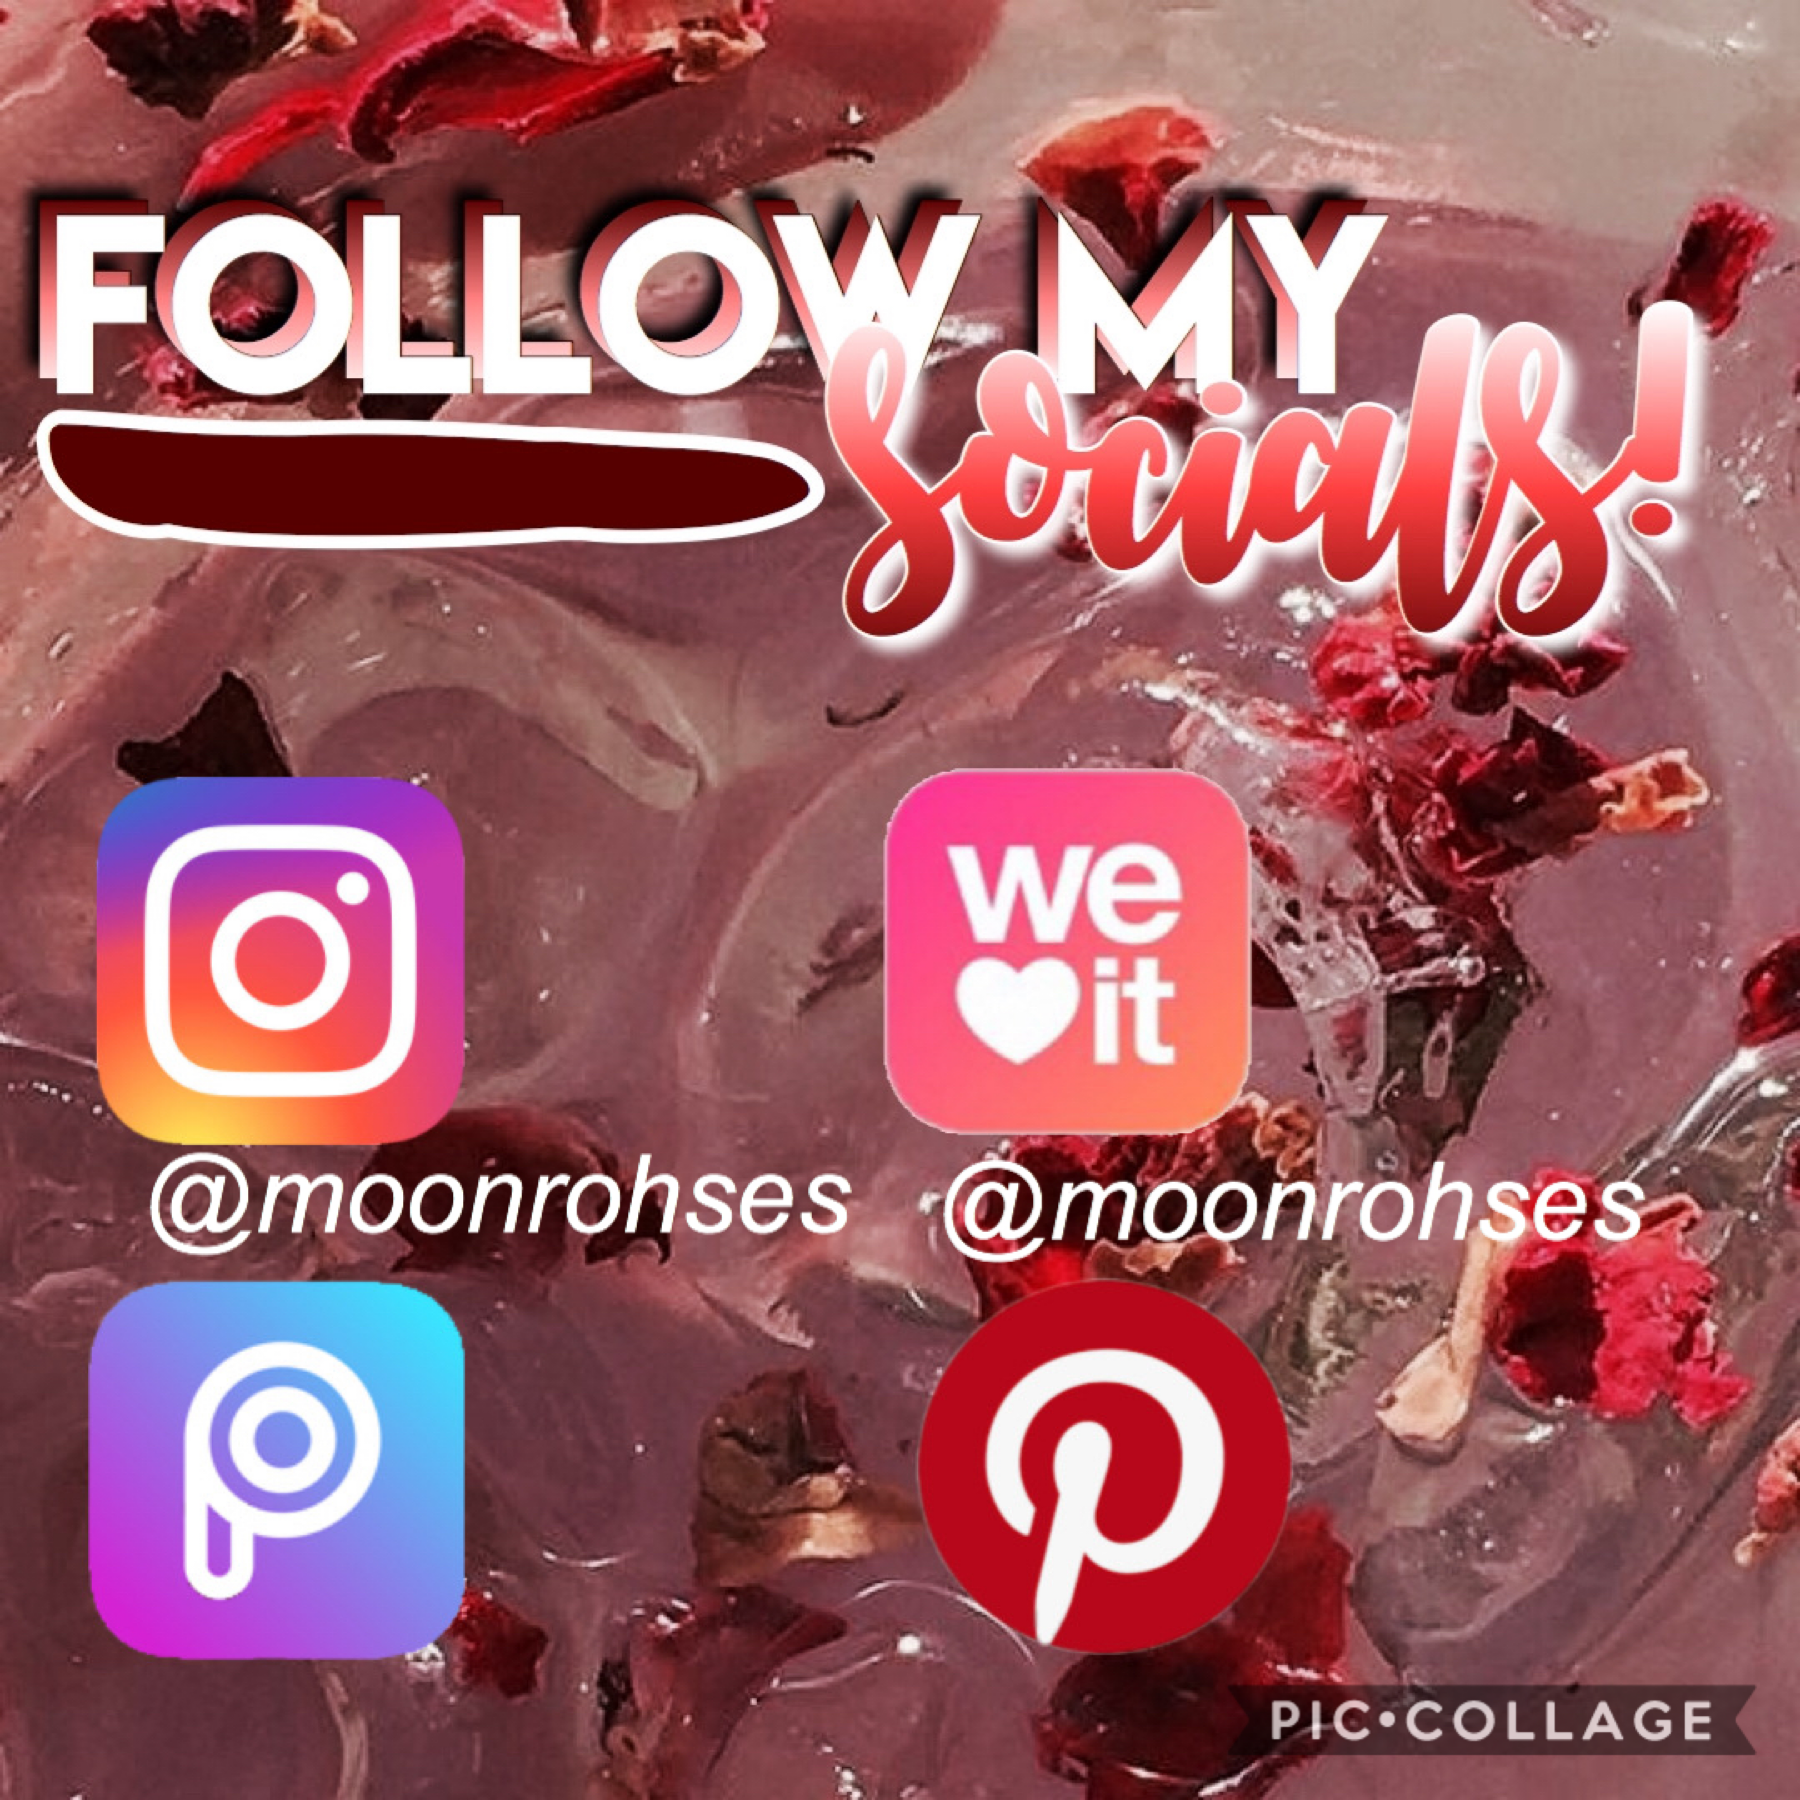 🧨 t a p 🧨  Yes, all my socials are @moonrohses so make sure to go follow!!